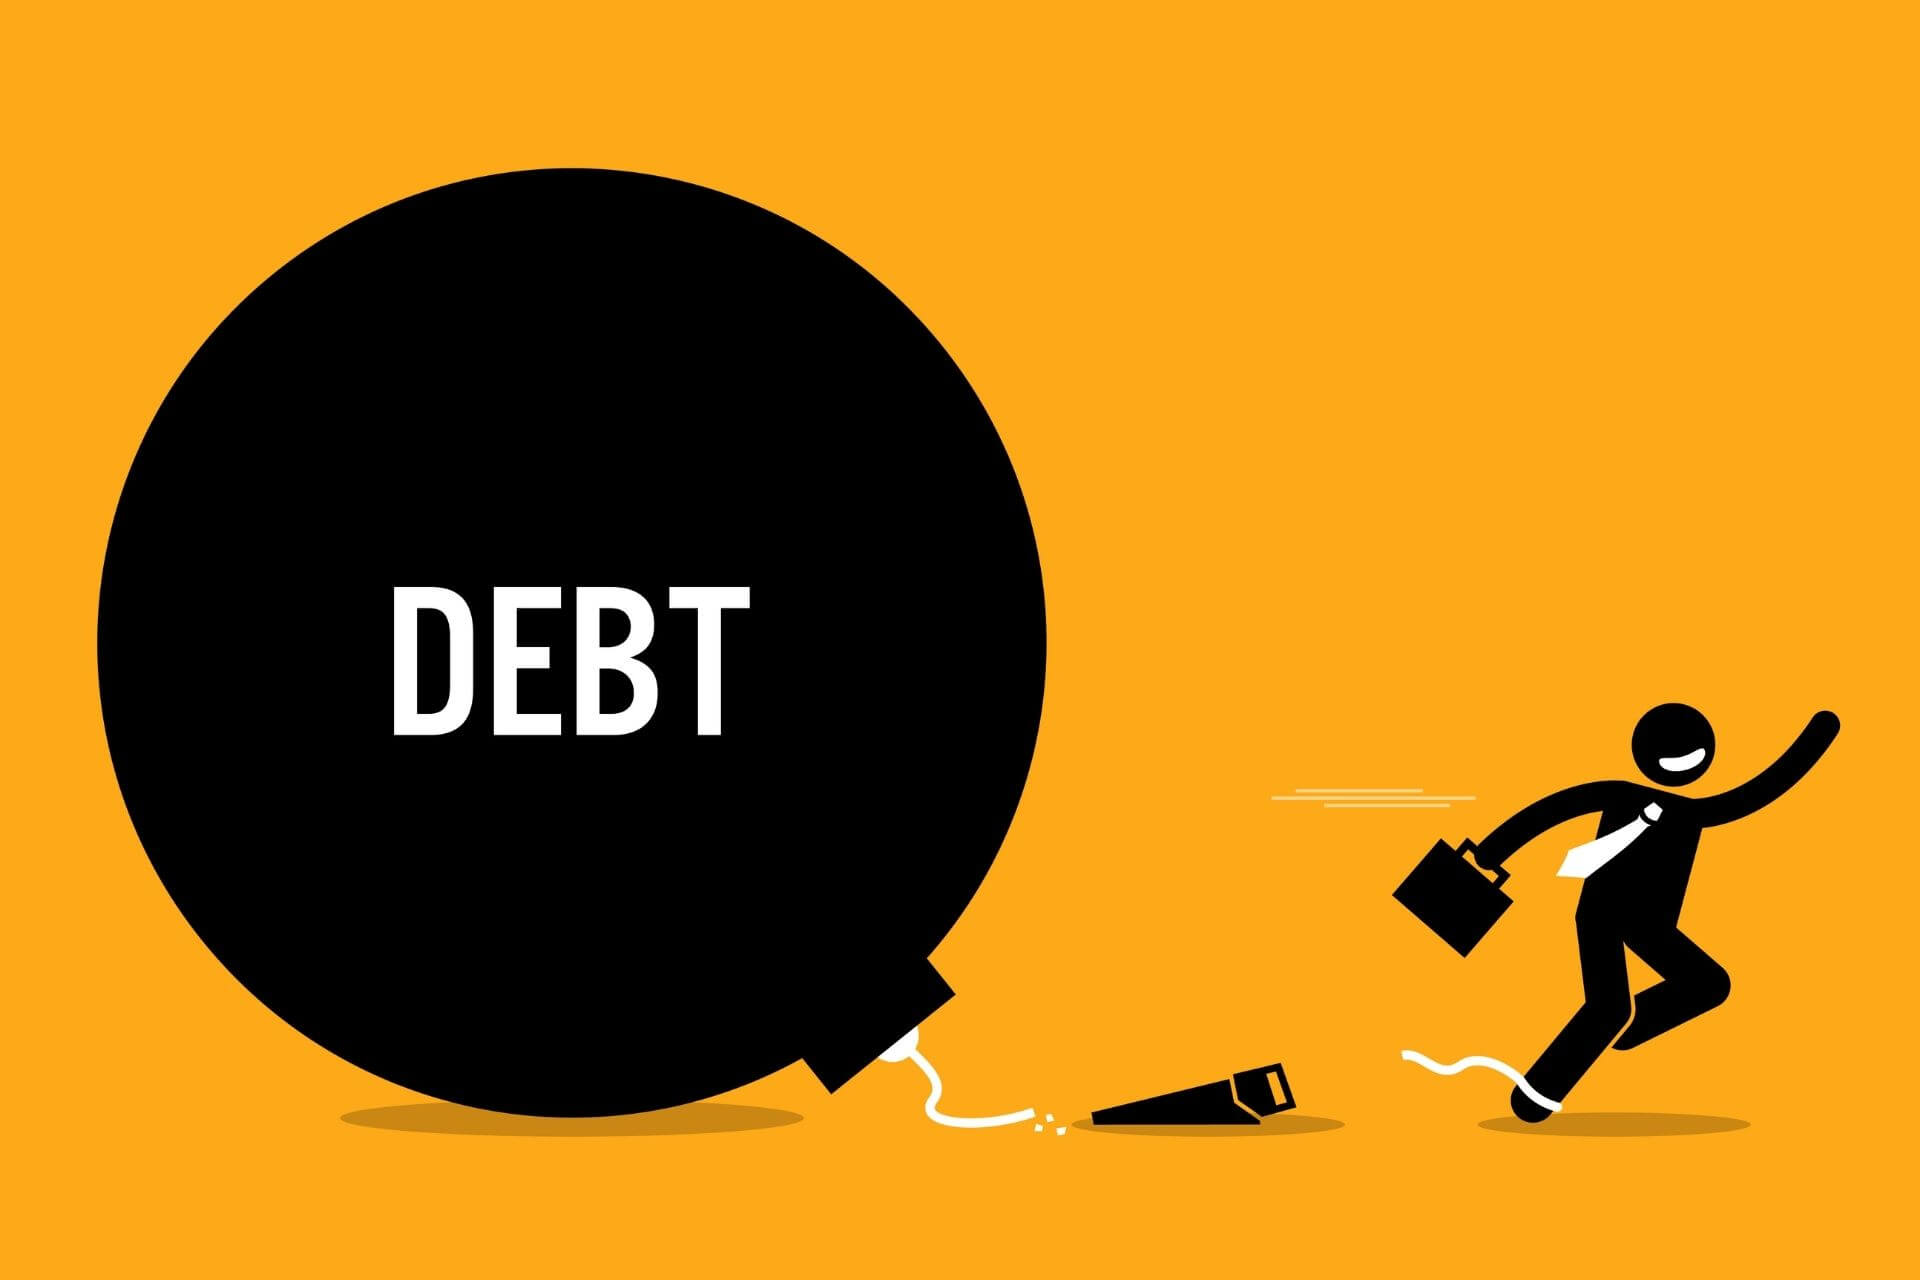 How to Find Debt Free Companies in India? Trade Brains Screener!